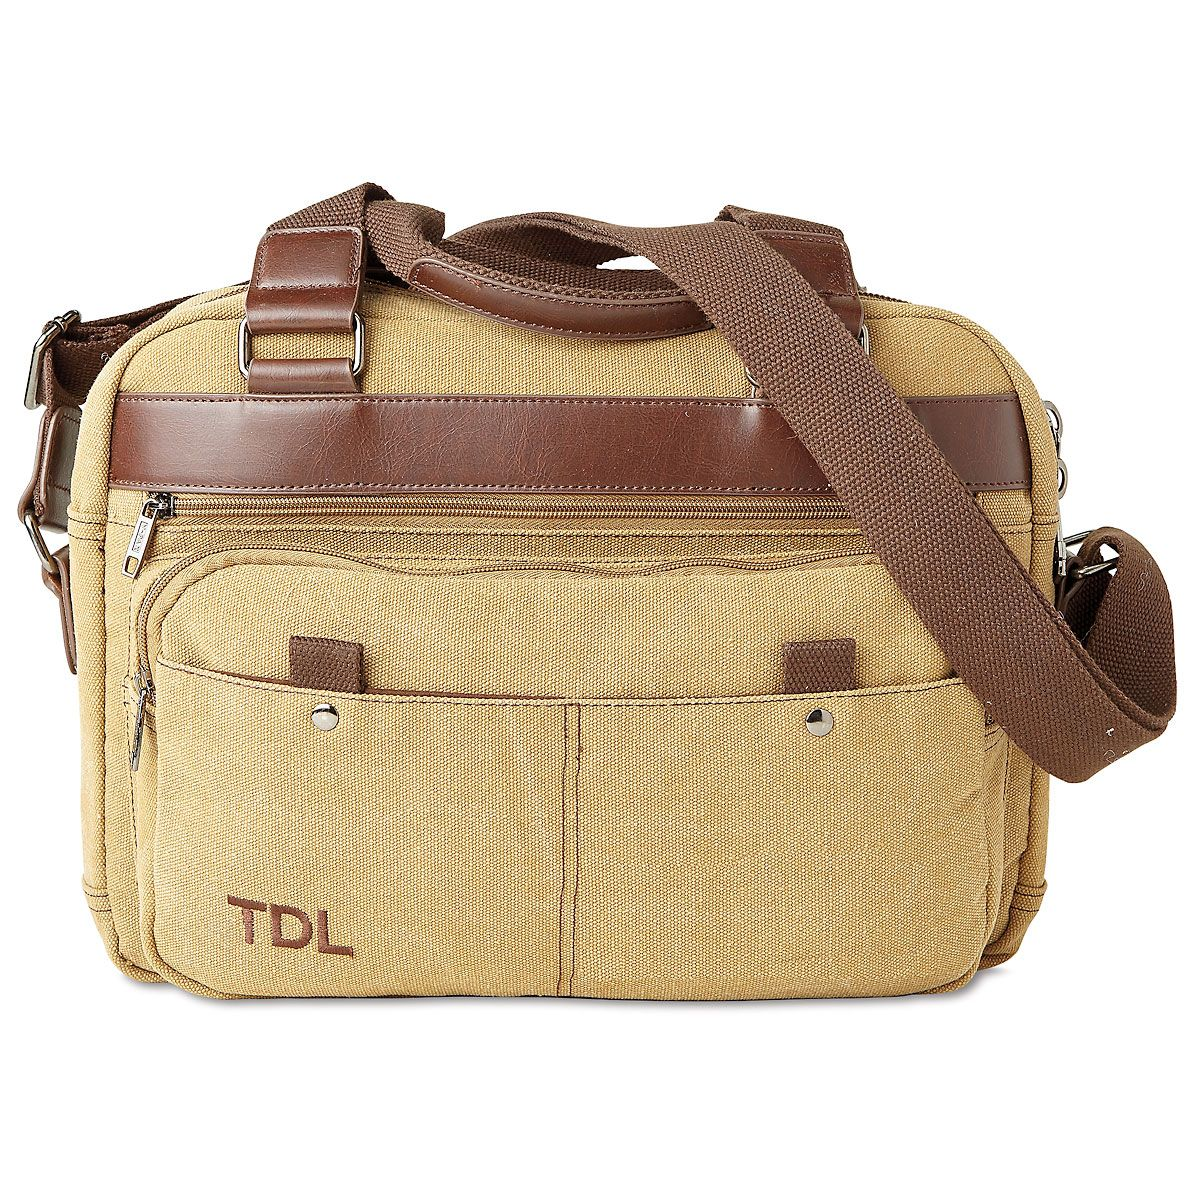 Personalized Laptop Carrier